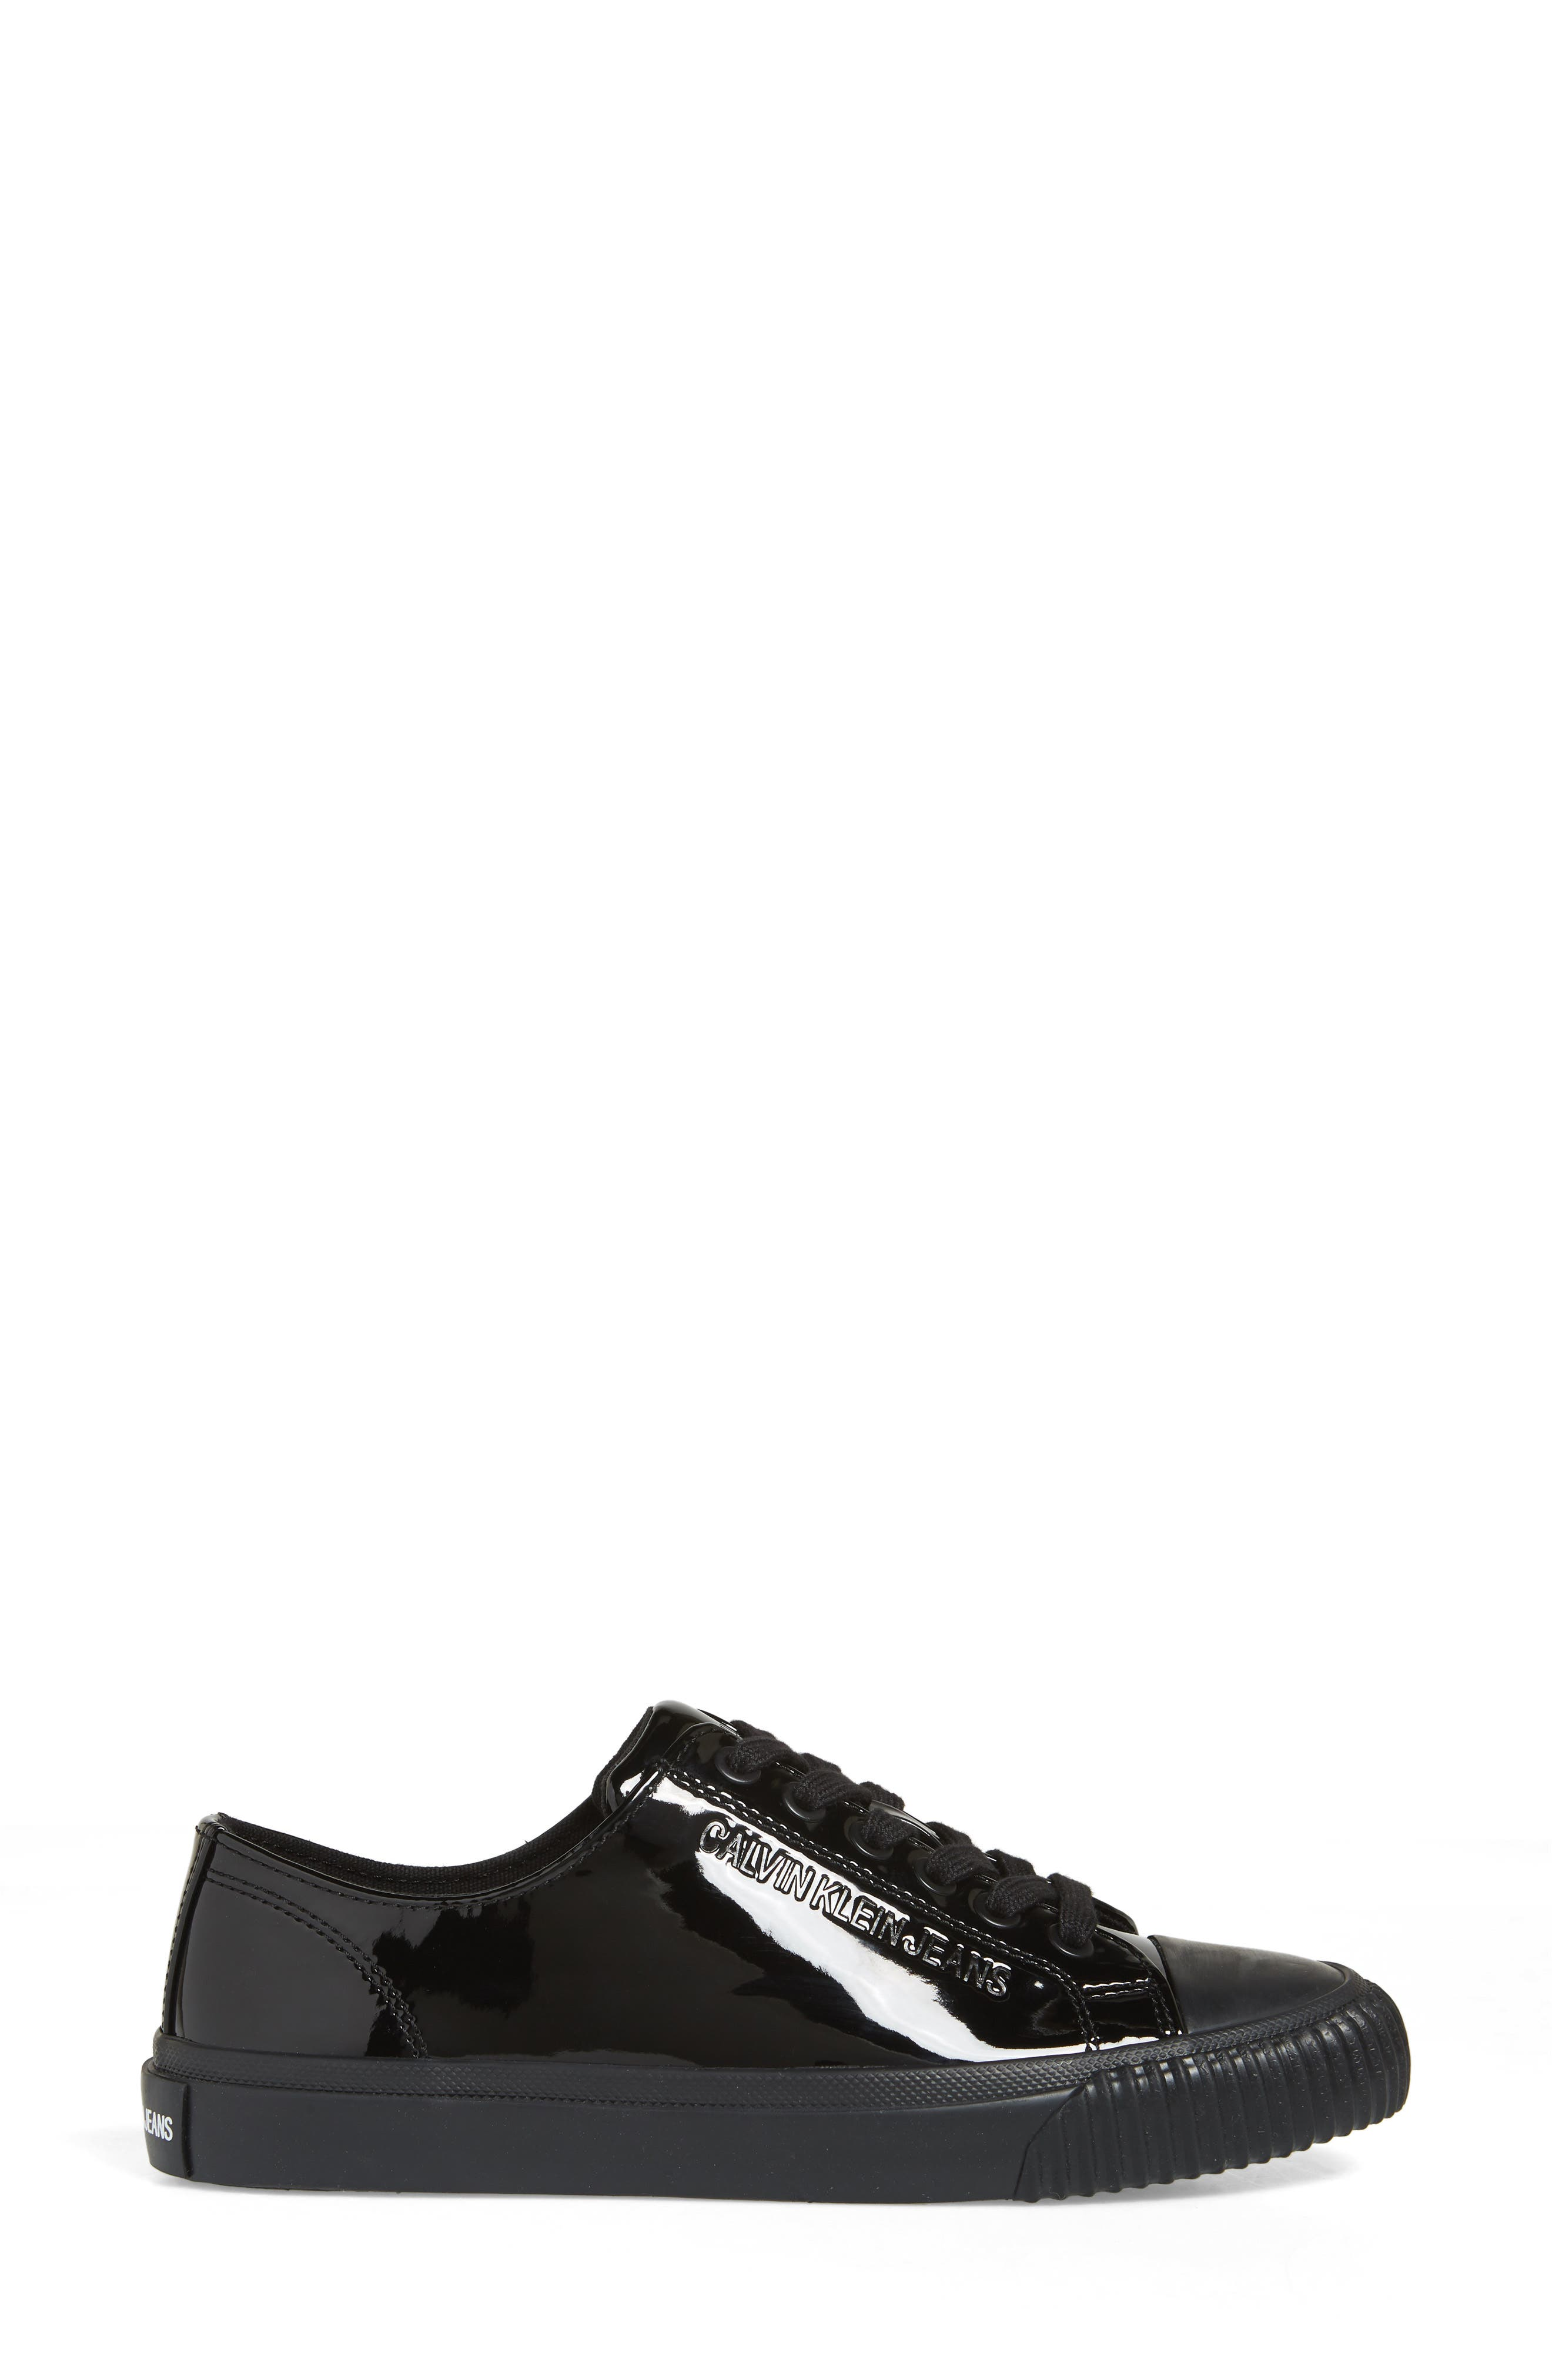 Ireland Lace-Up Sneaker,                             Alternate thumbnail 3, color,                             BLACK